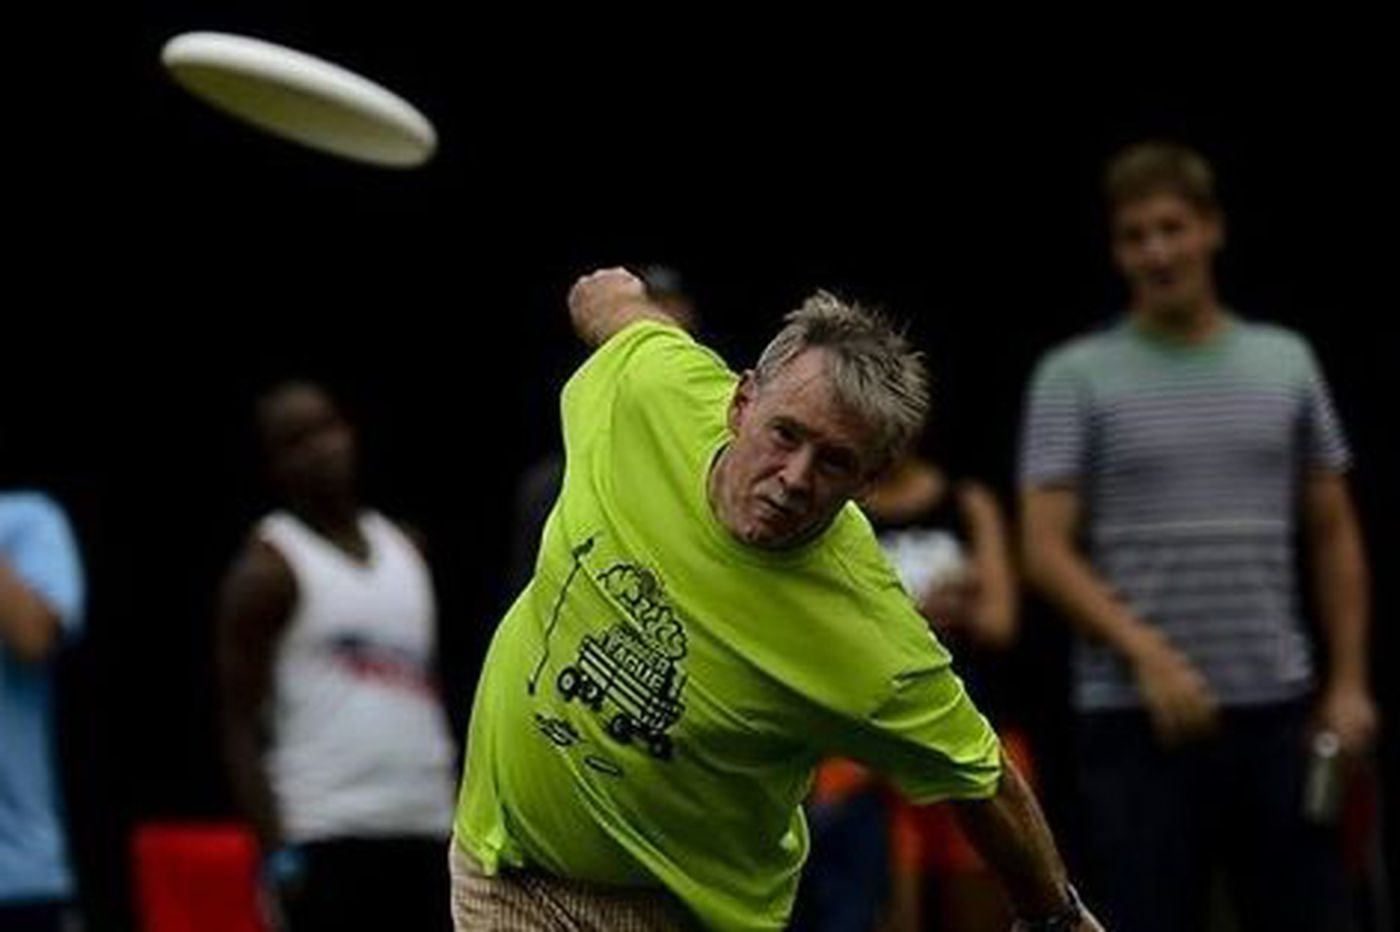 Donald 'Sauce' Cain, 62, Ultimate Frisbee legend and record holder